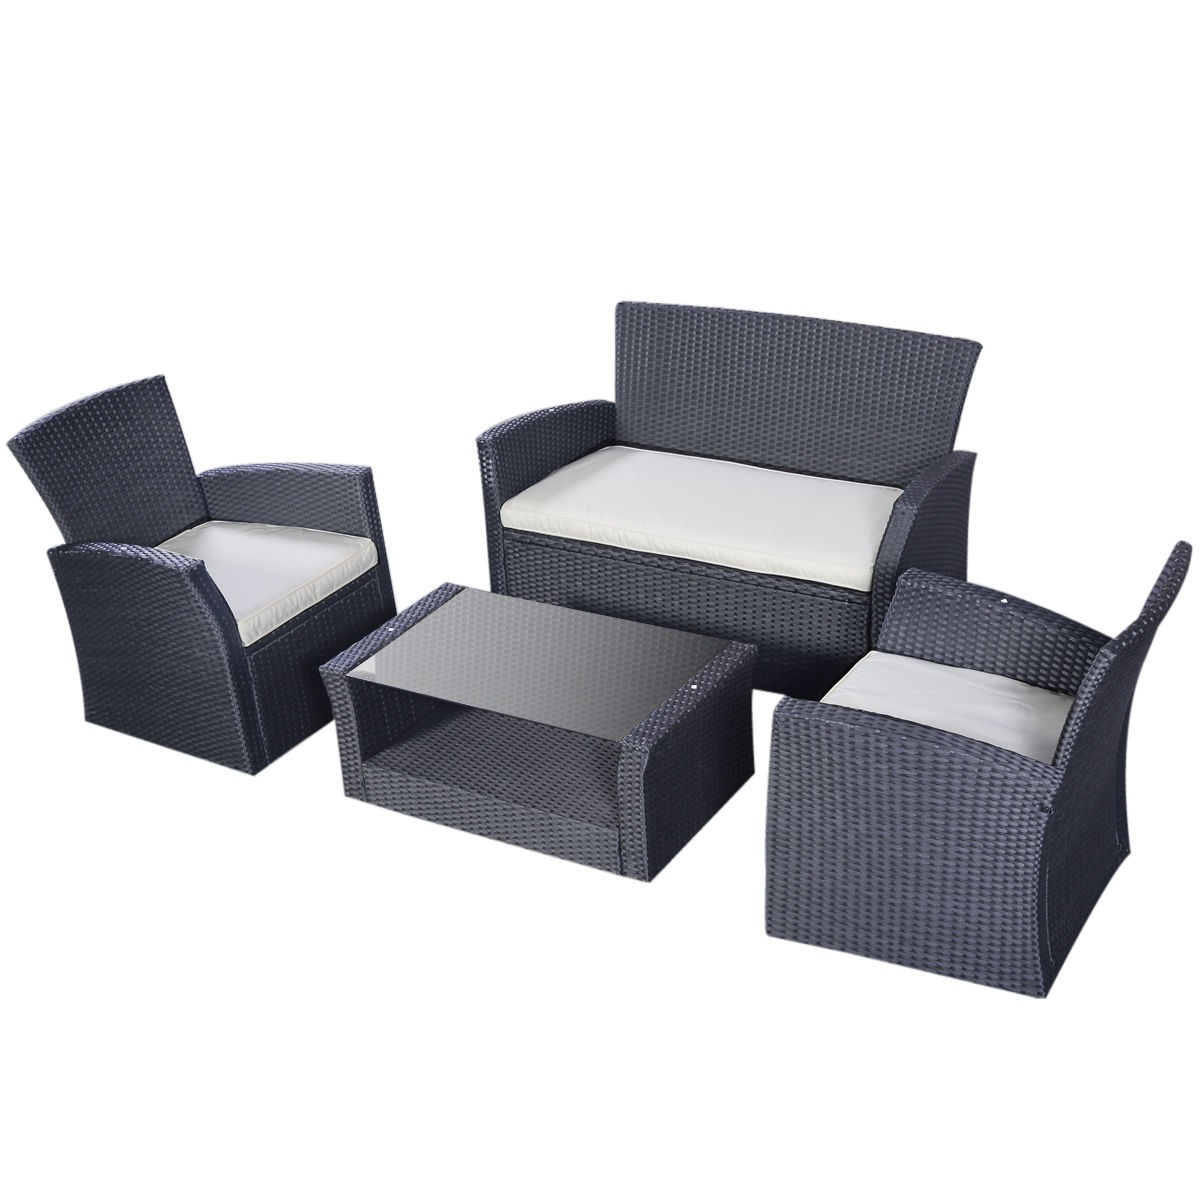 4PCS Outdoor Patio Furniture Set Wicker Garden Lawn Sofa Rattan US ...